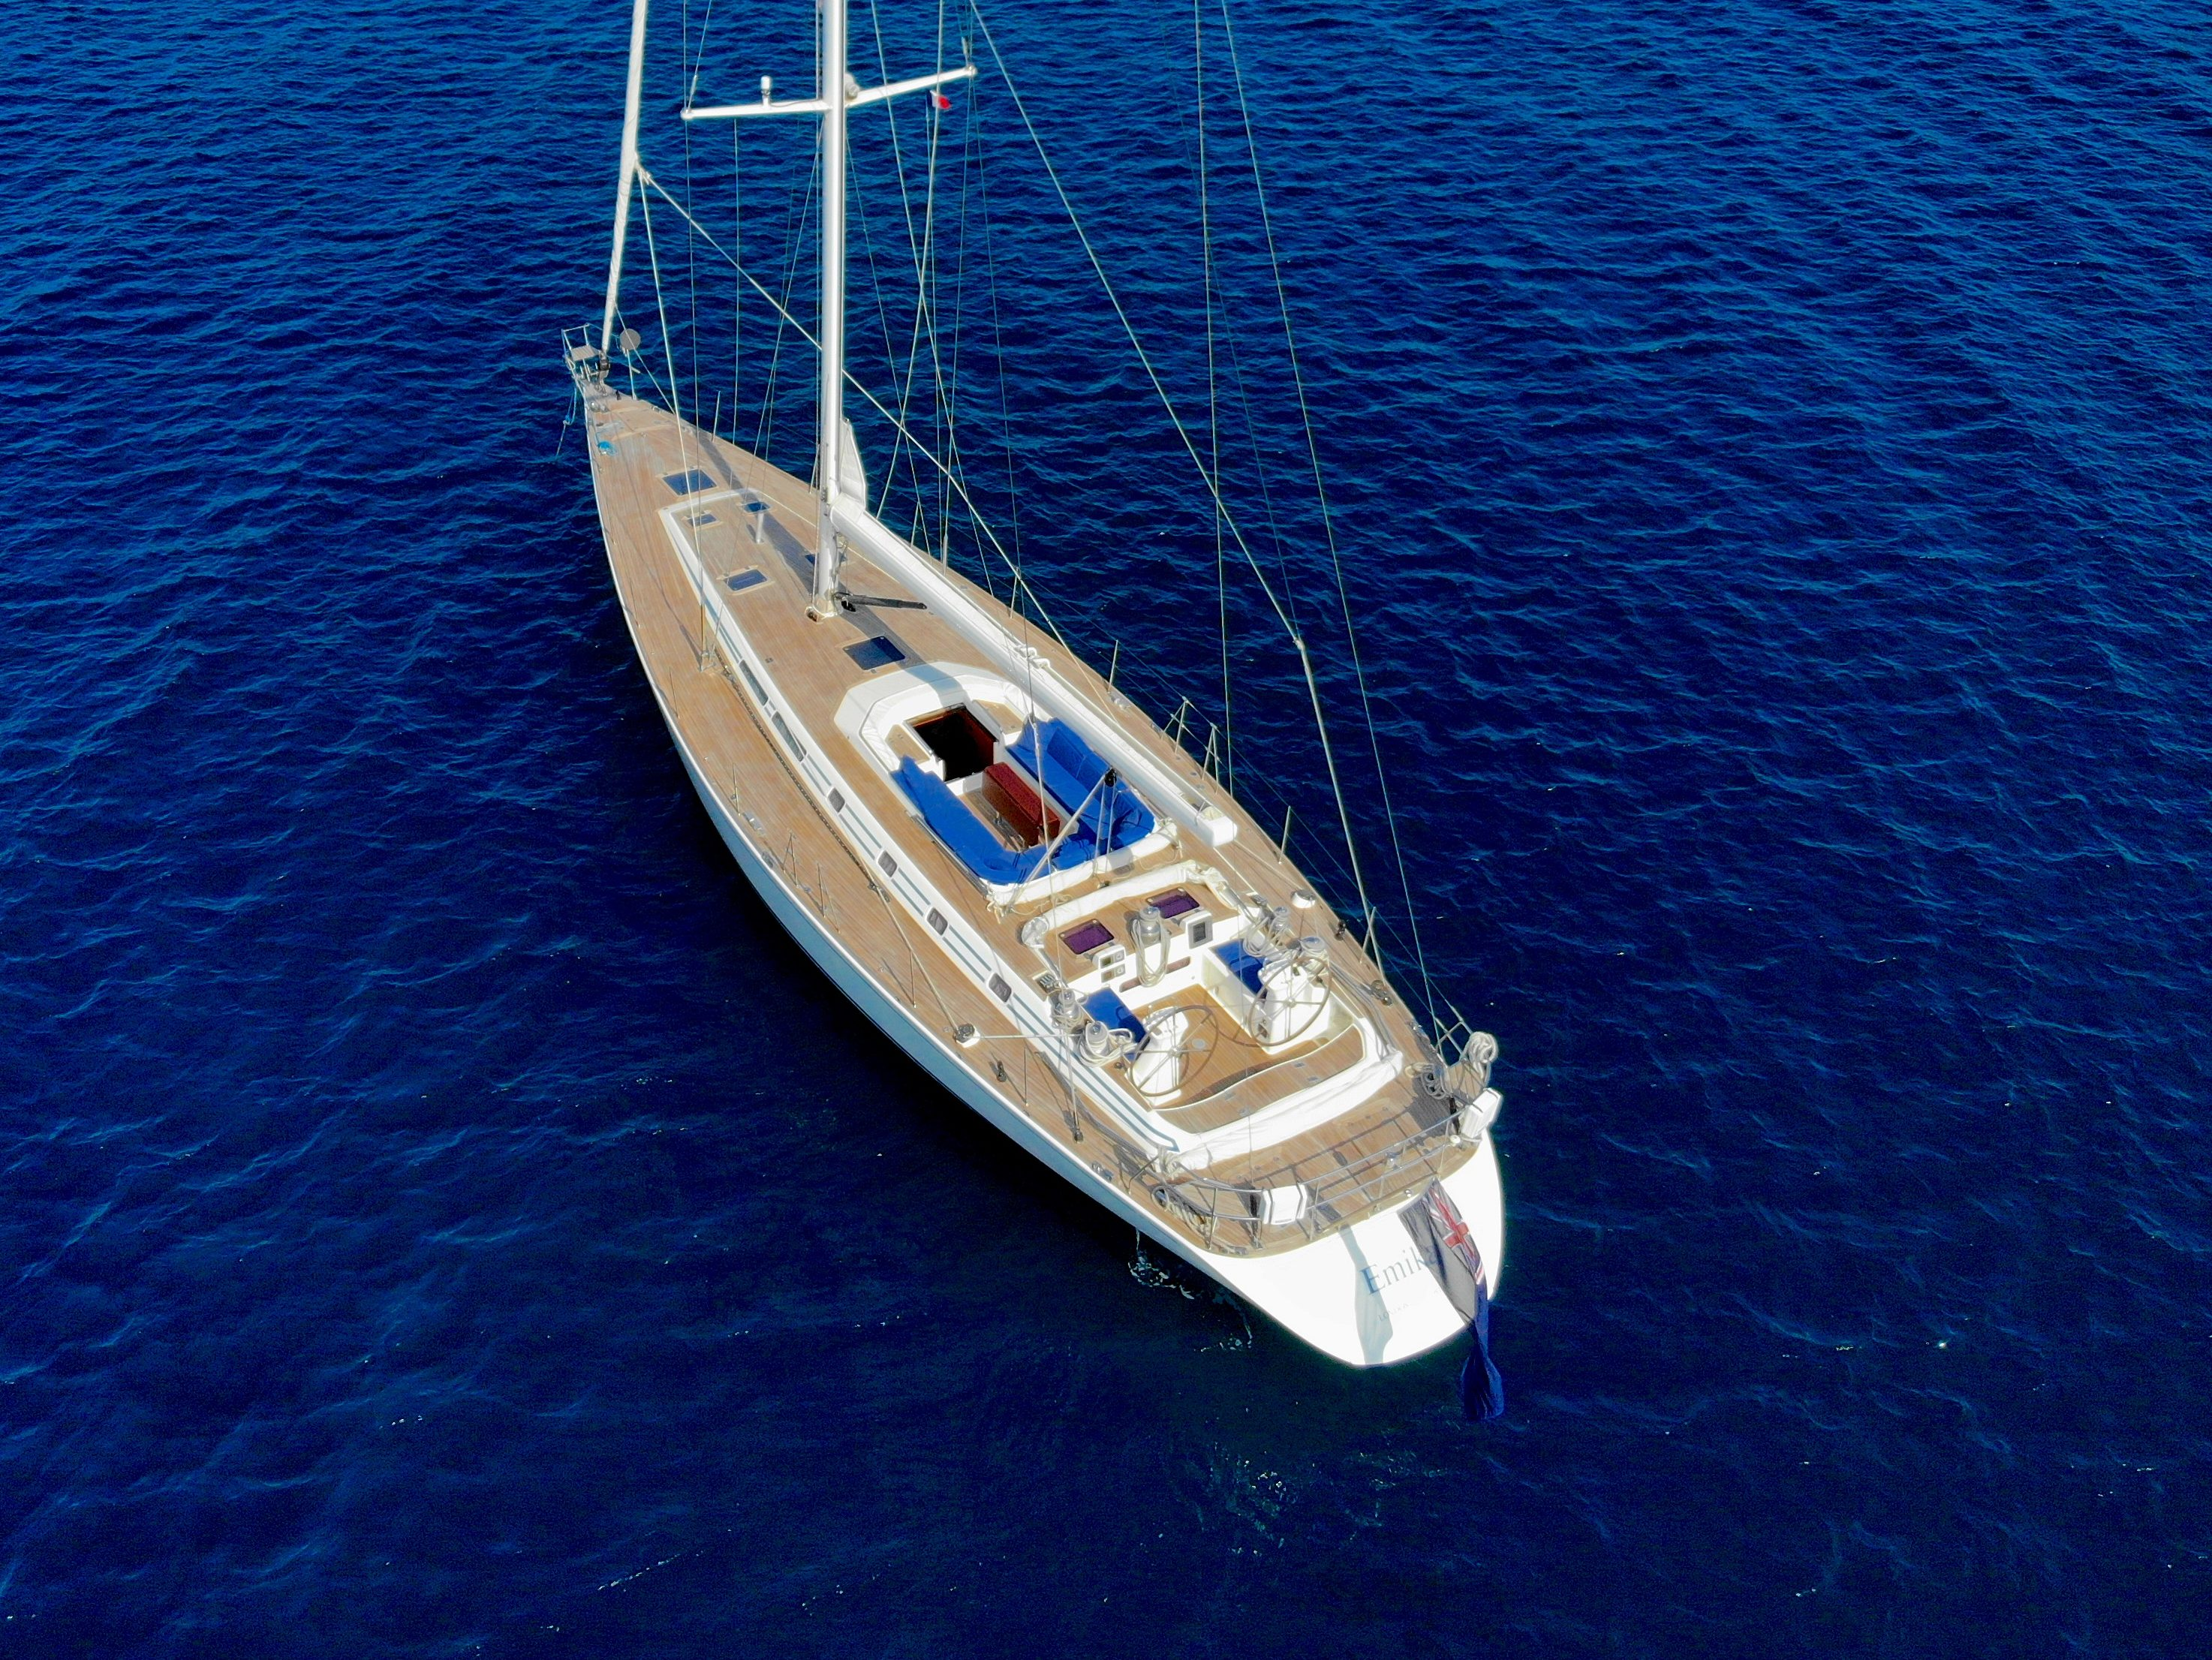 Lilley Marine - Specializing in the Sale & Purchase of Pre